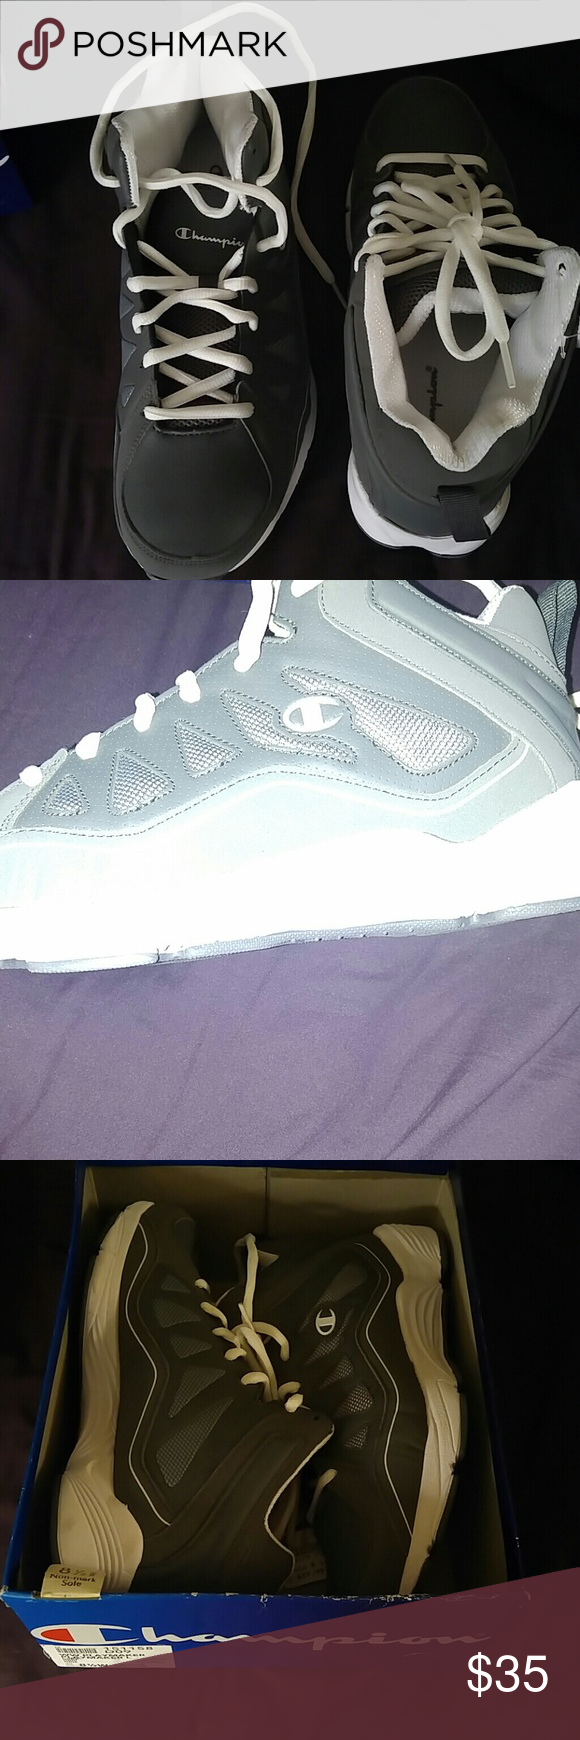 6e8508047a531 👟Champion Men s WW Playmaker Shoes 8.5W Grey and white 8.5 wide basketball  shoes NWT and box. Champion Shoes Athletic Shoes